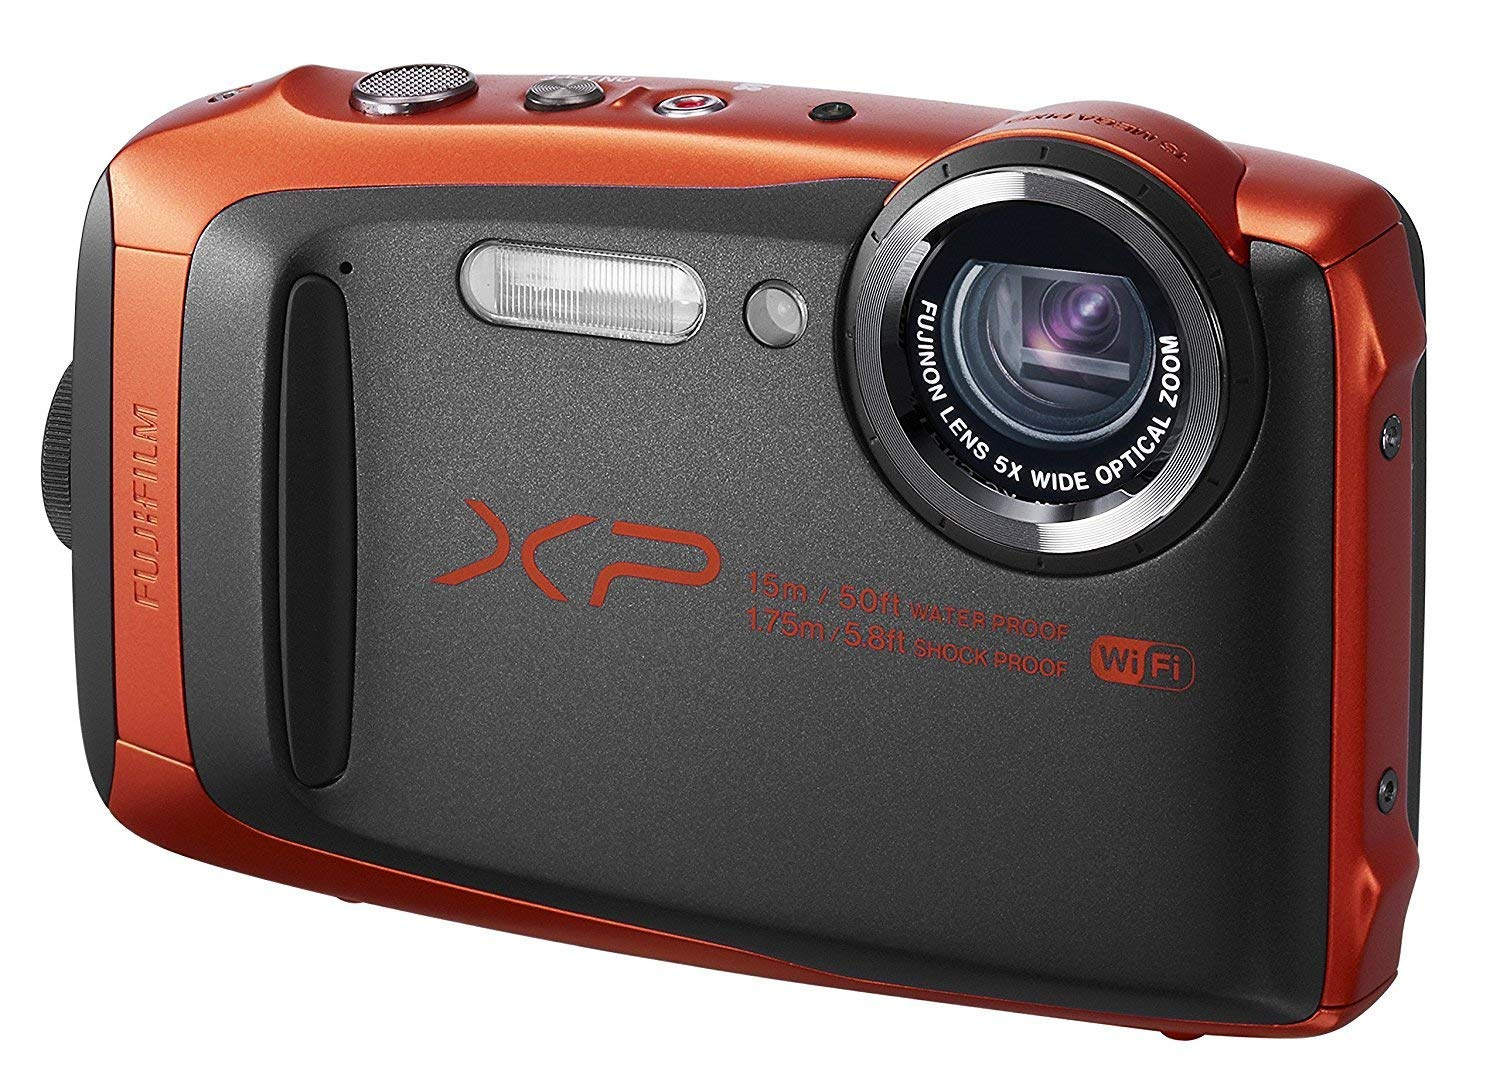 Fujifilm FinePix XP90 Digital Camera (Renewed) (Orange) by Fujifilm